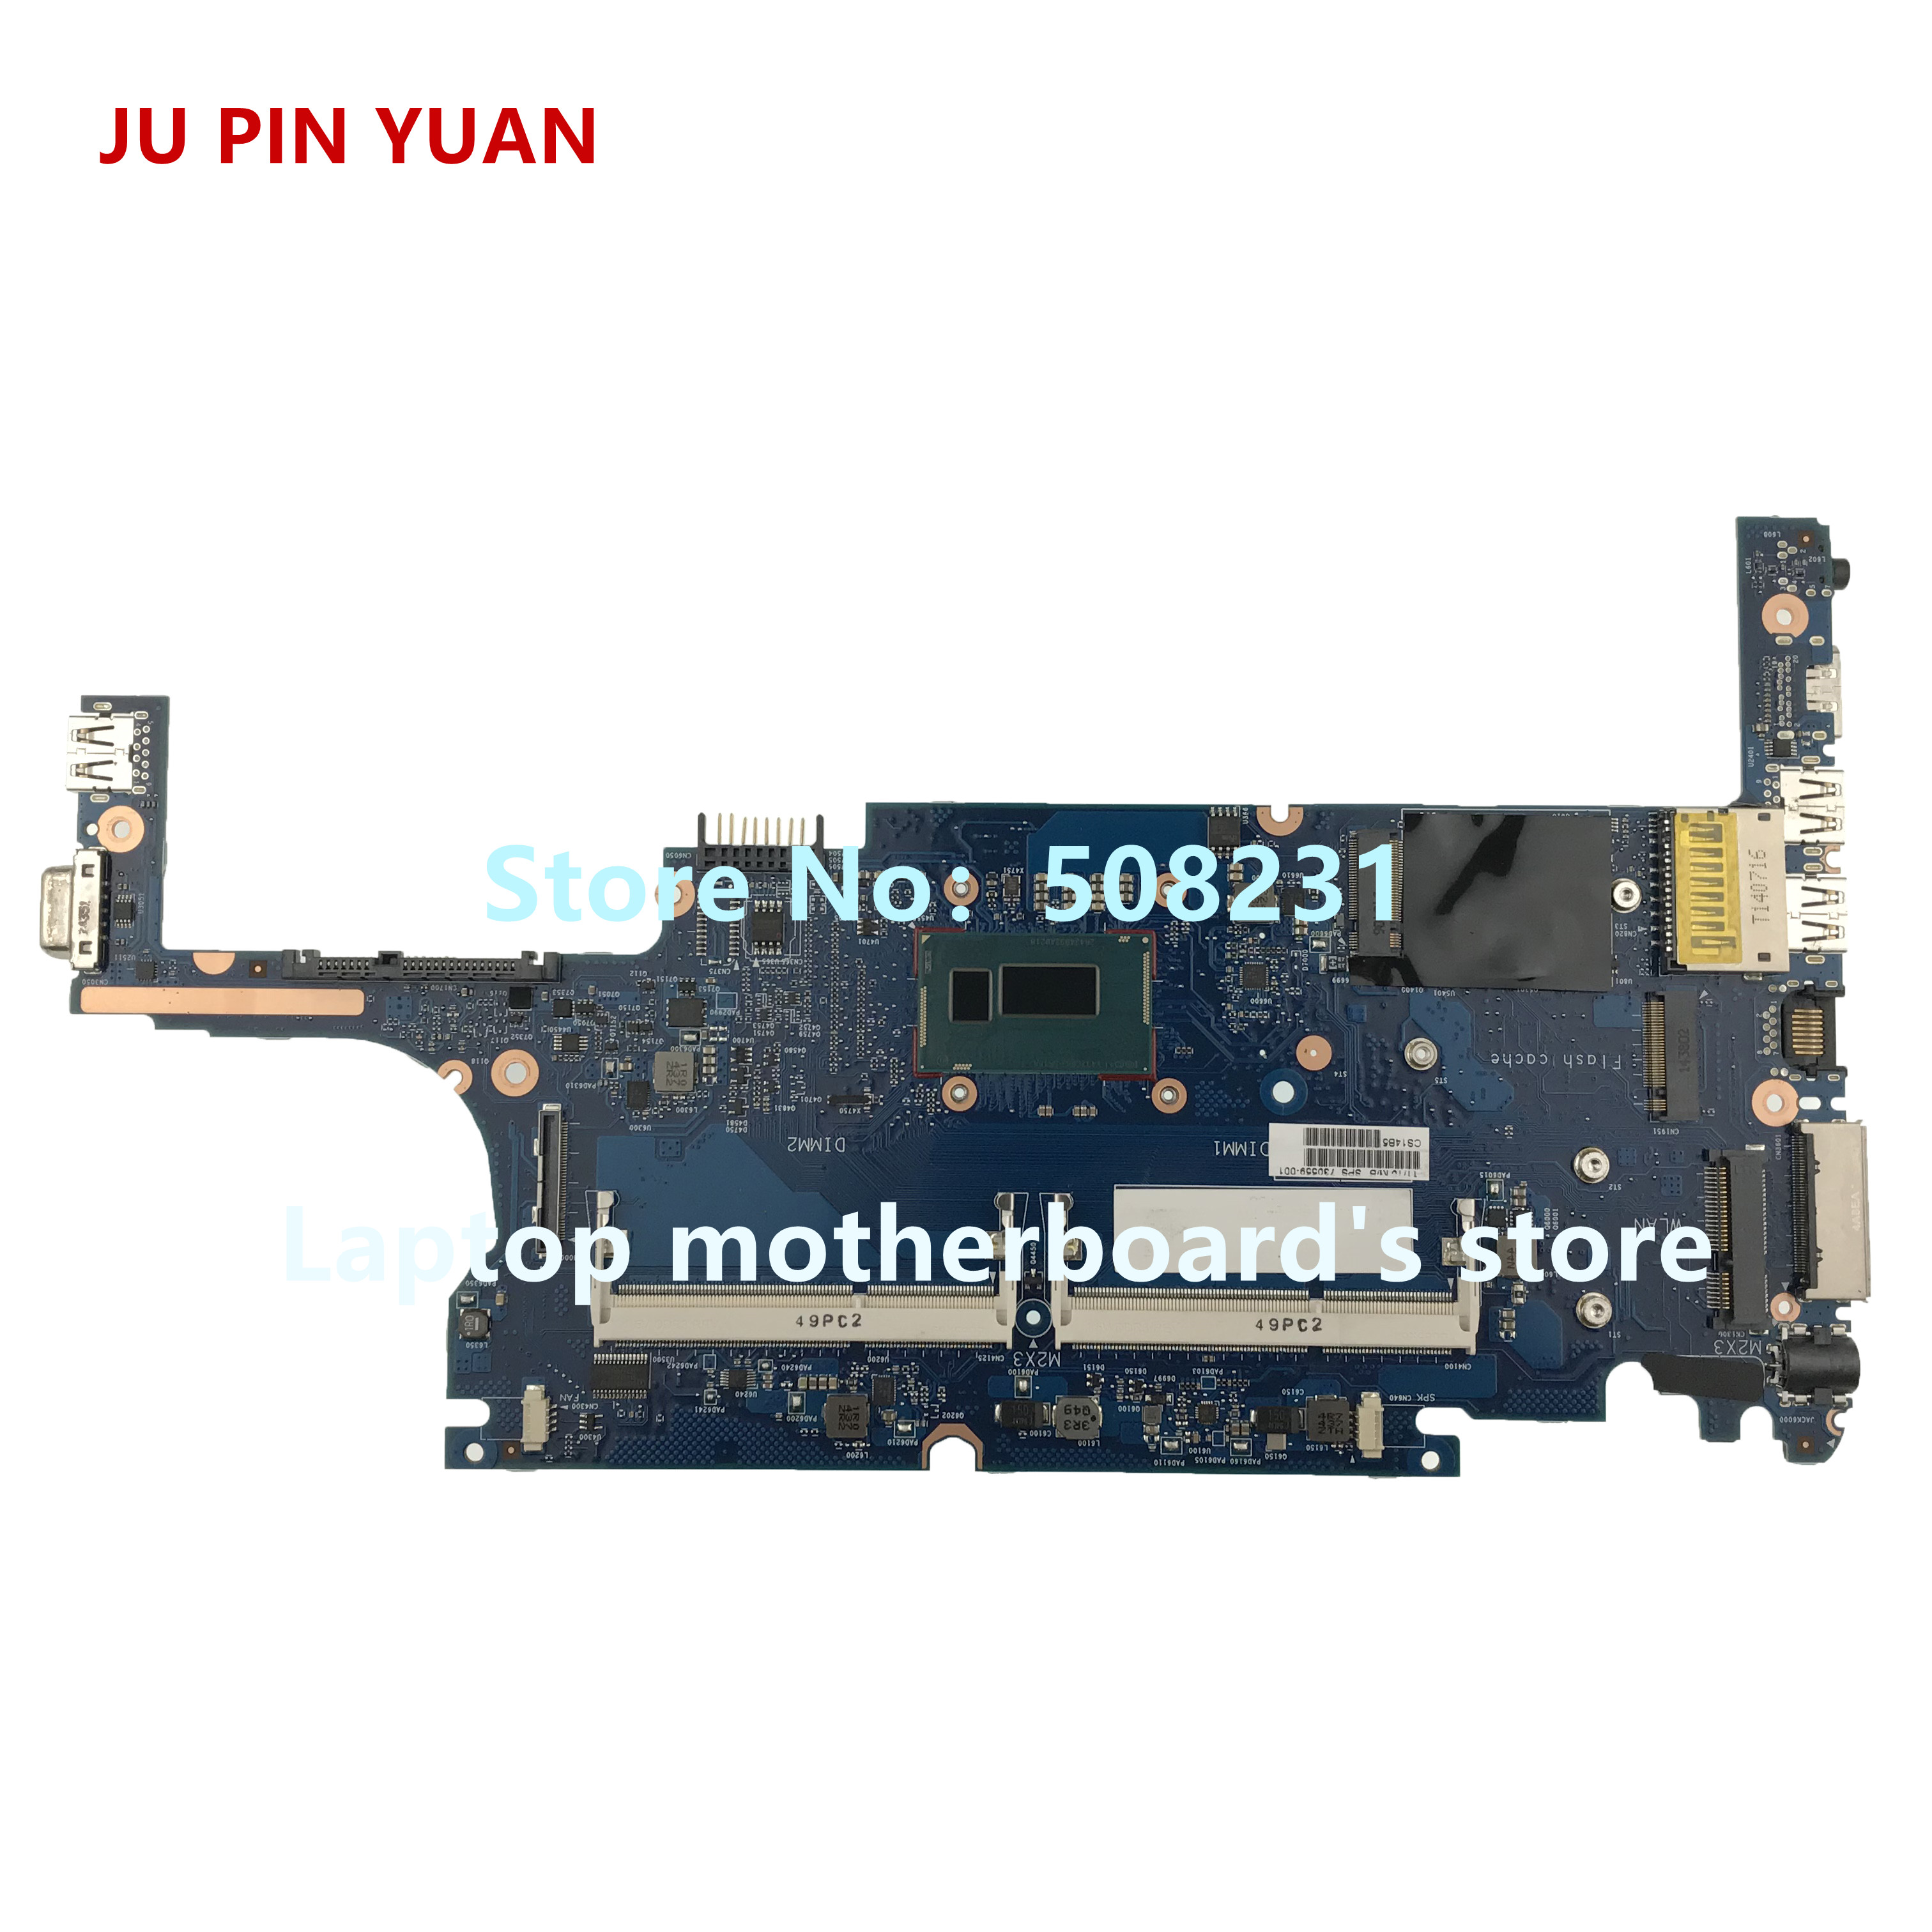 JU PIN YUAN For HP 820 G1 Laptop Motherboard 730559-001 730559-501 730559-601 with <font><b>i7</b></font>-<font><b>4600U</b></font> 100% fully Tested image